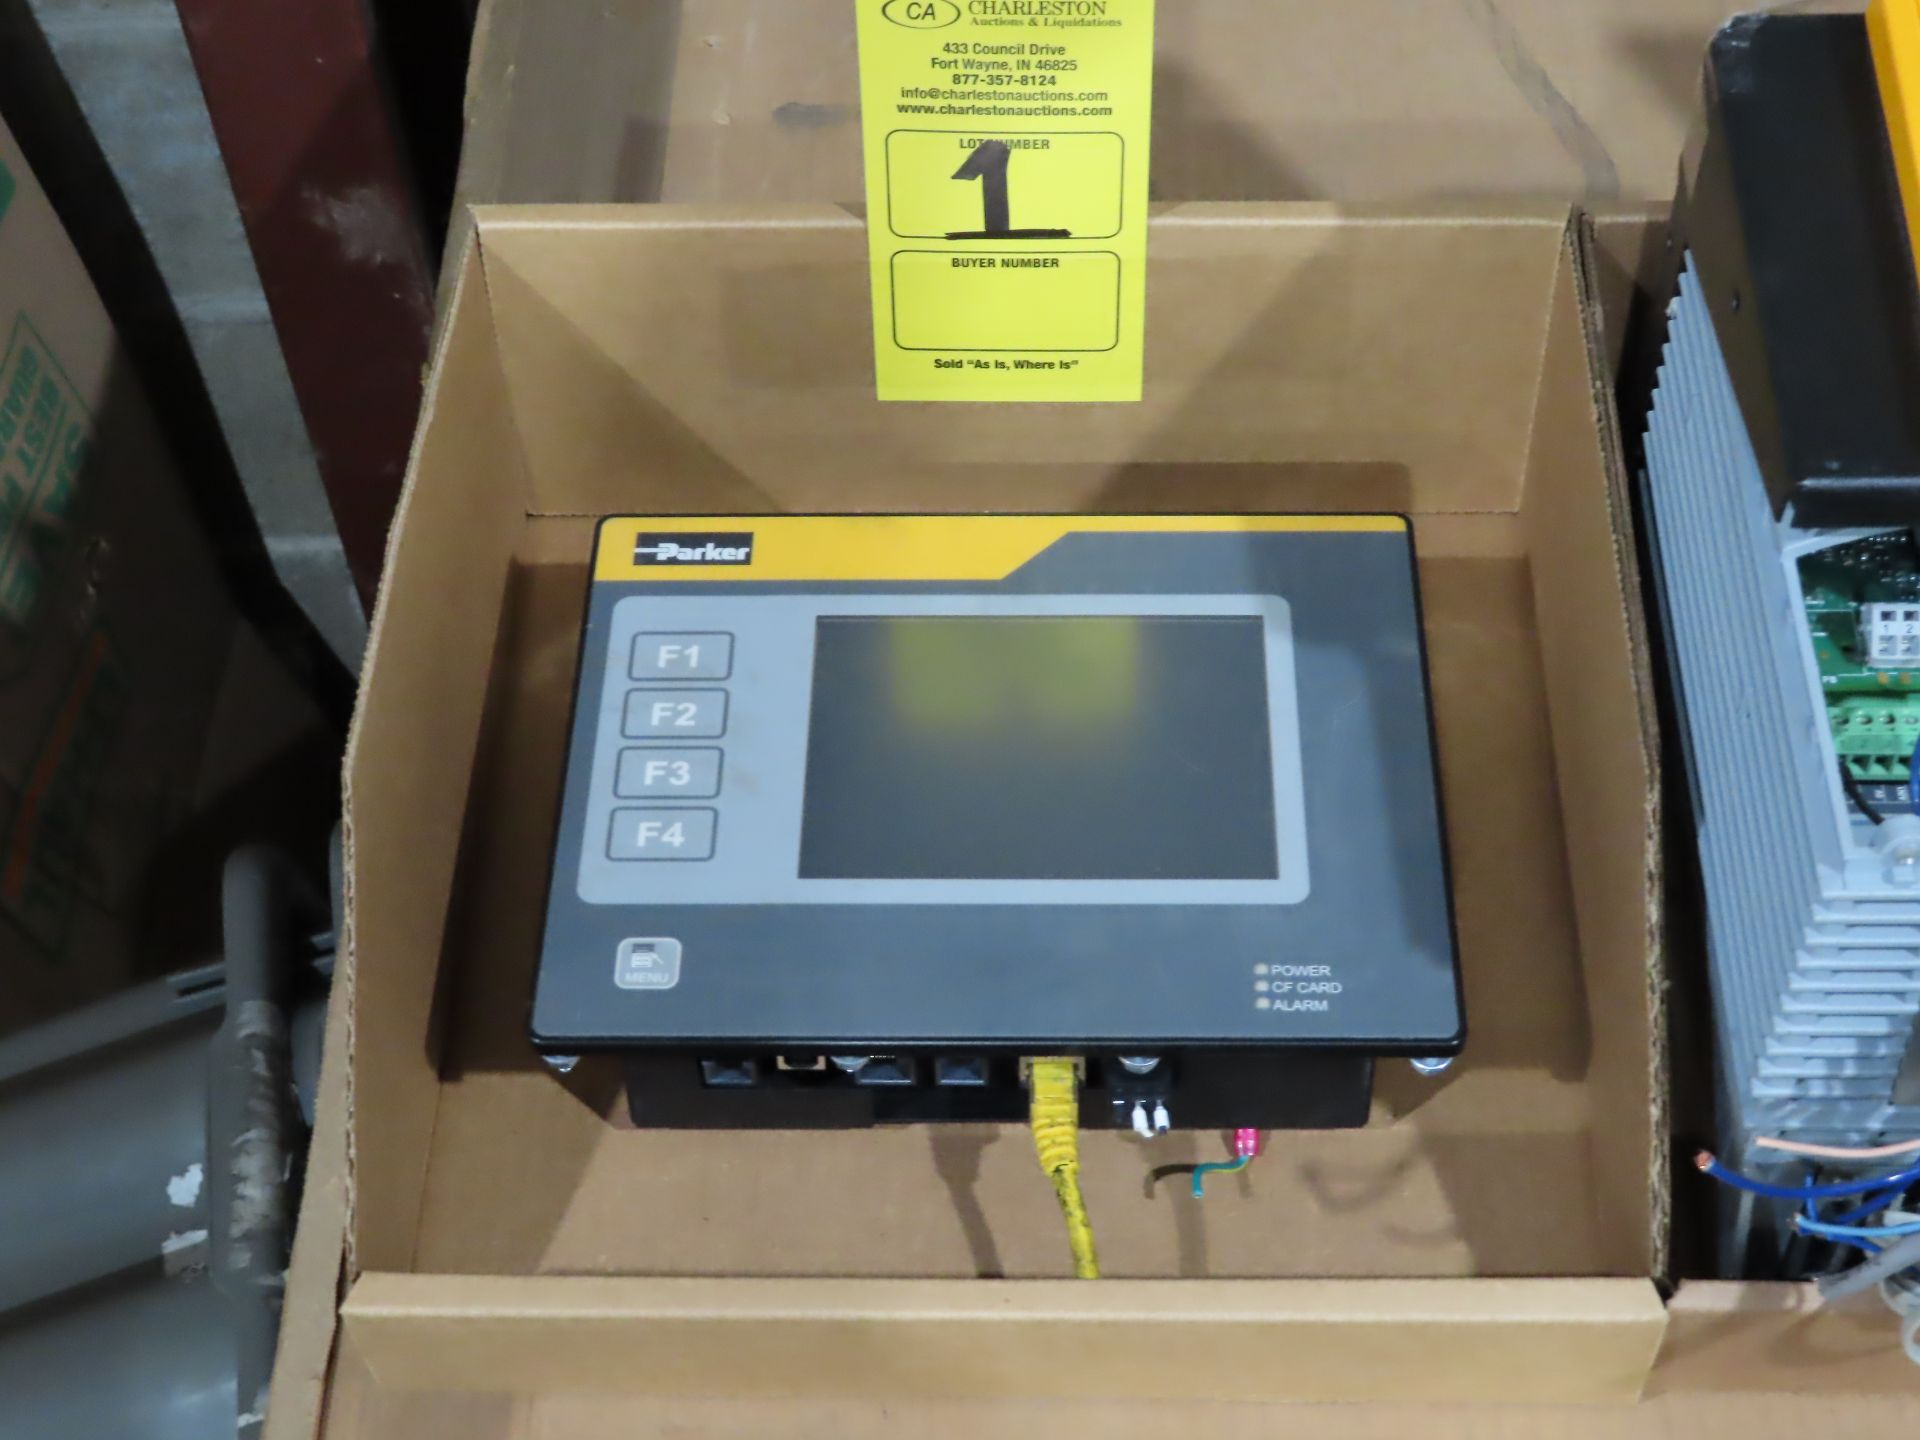 Lot 1 - Parker user interface model TS8006/00/00, as always, with Brolyn LLC auctions, all lots can be